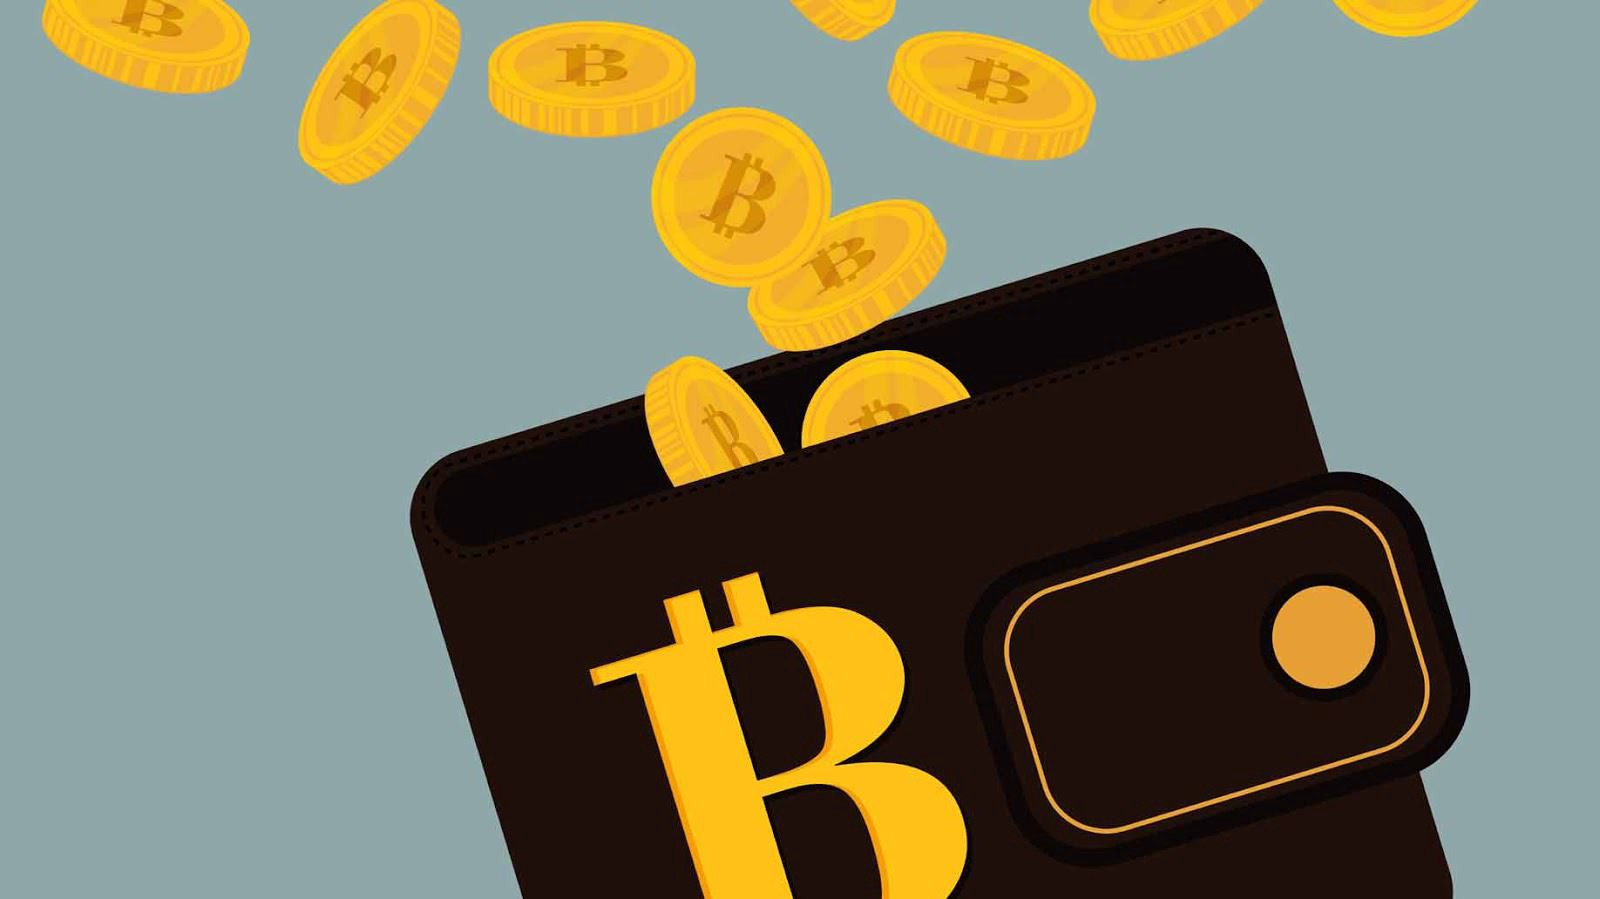 Bitcoin wallet clipart image freeuse stock The Top Bitcoin Wallet in 2018 (and beyond) - ECOMI - Medium image freeuse stock